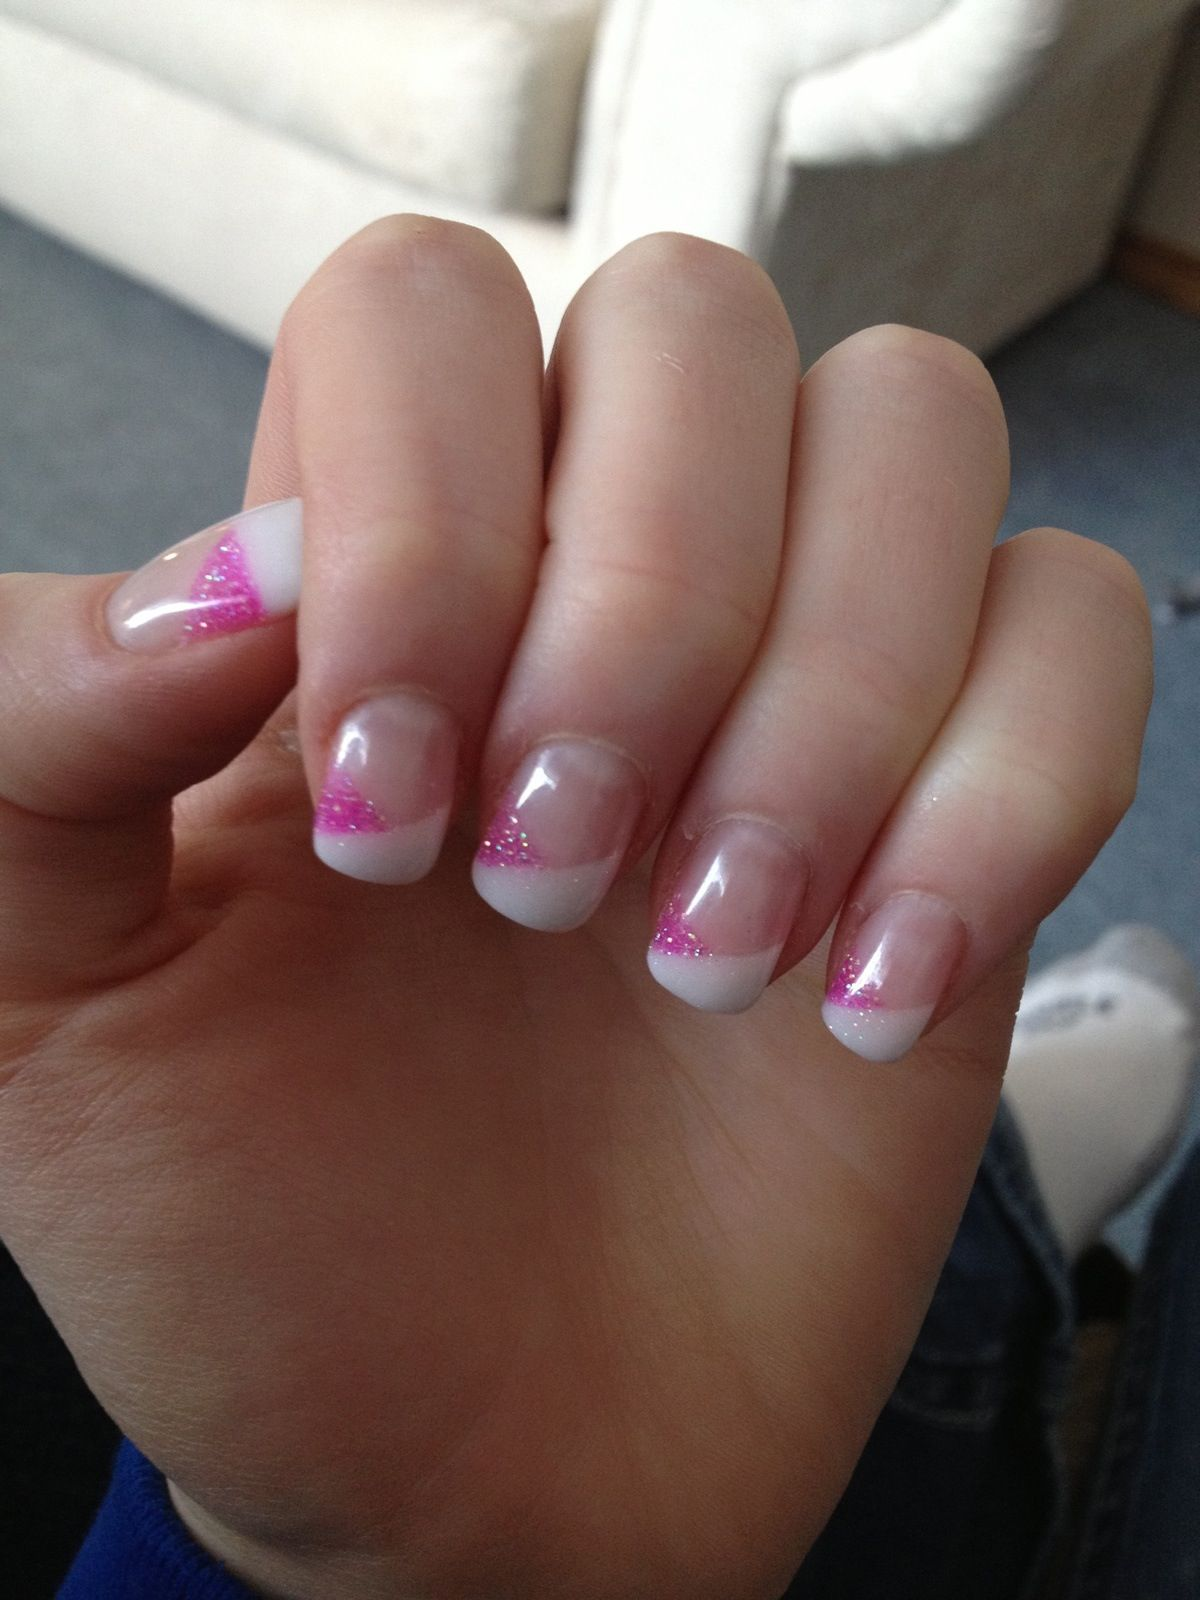 Pink French nails | Nails | Pinterest | French nails, Manicure and ...